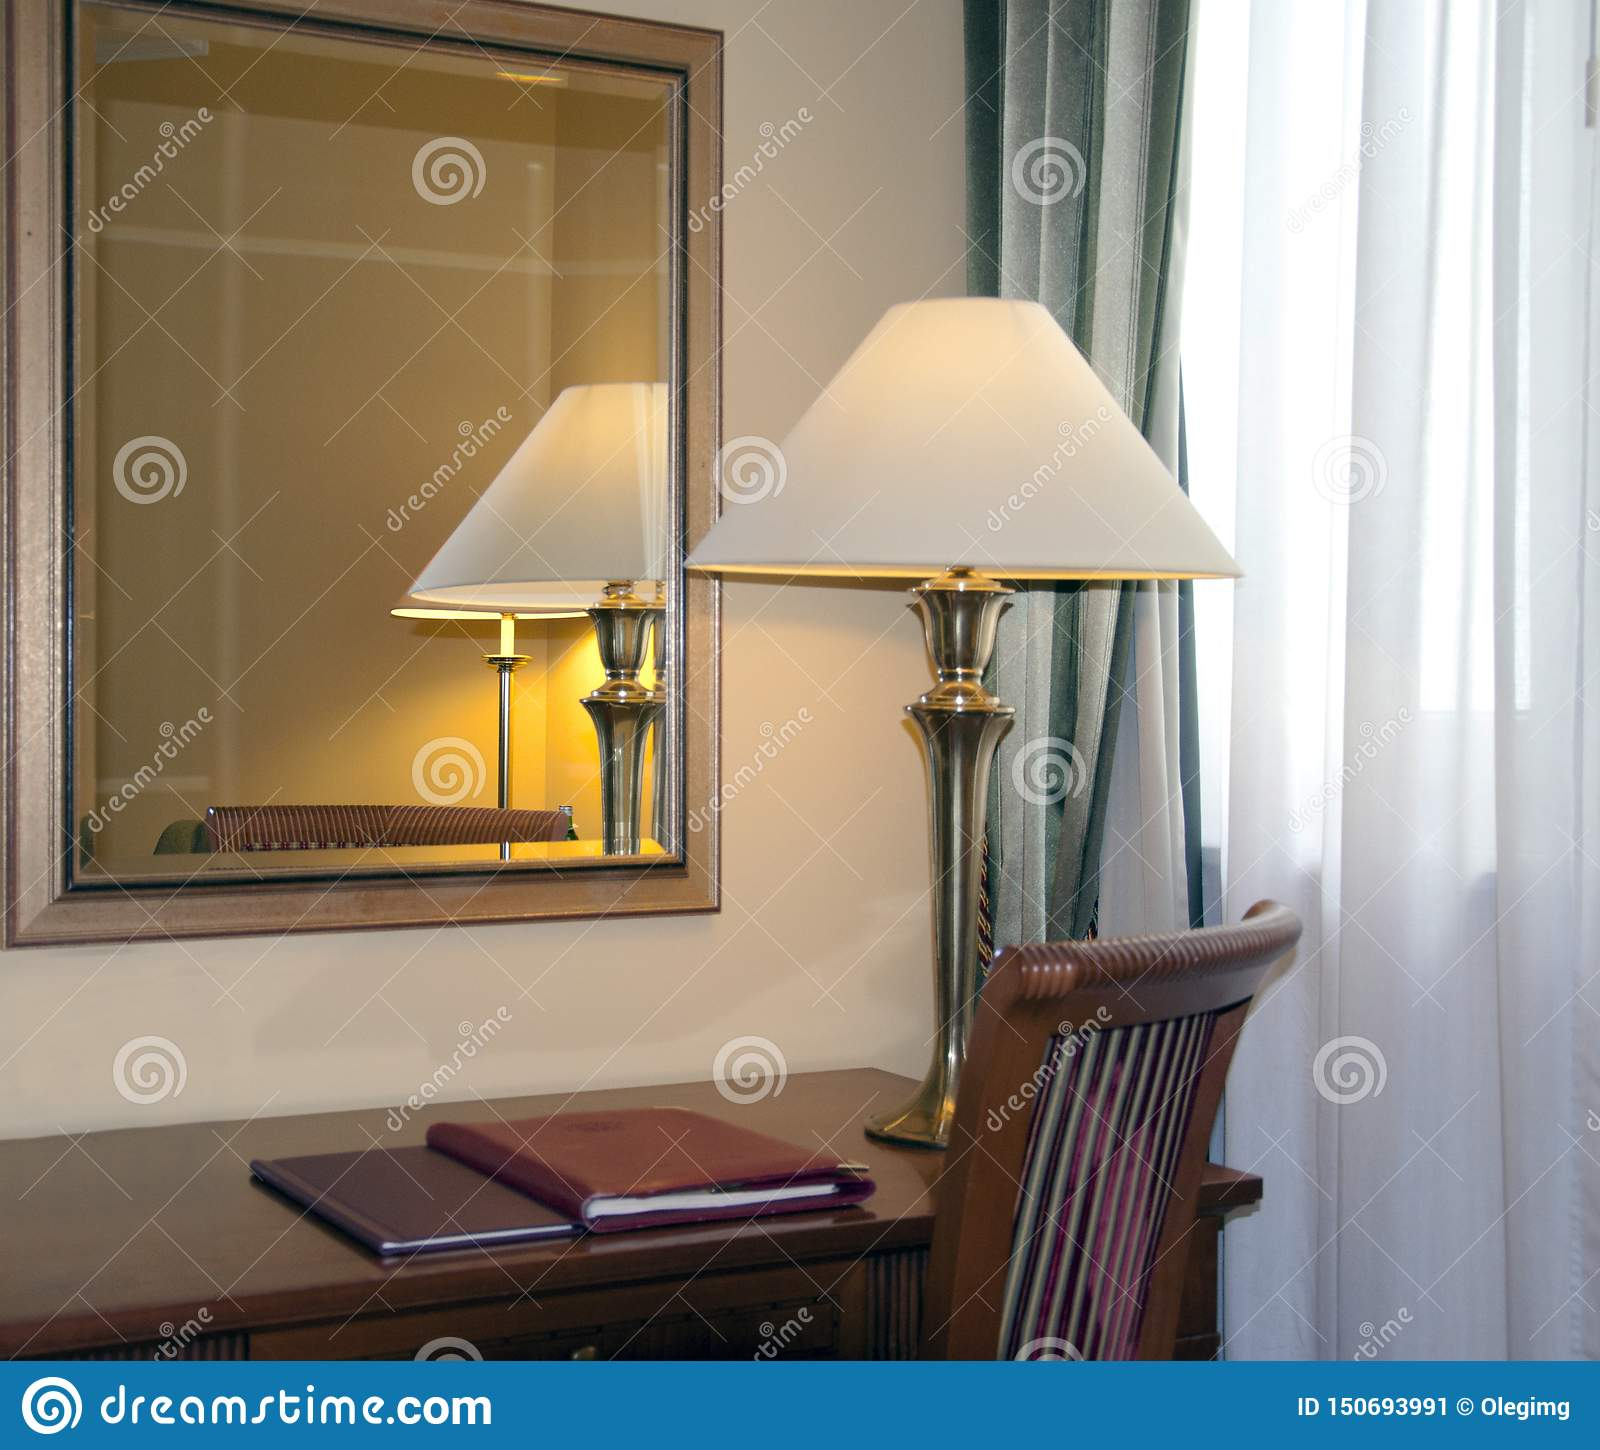 Hotel room with desk lamp